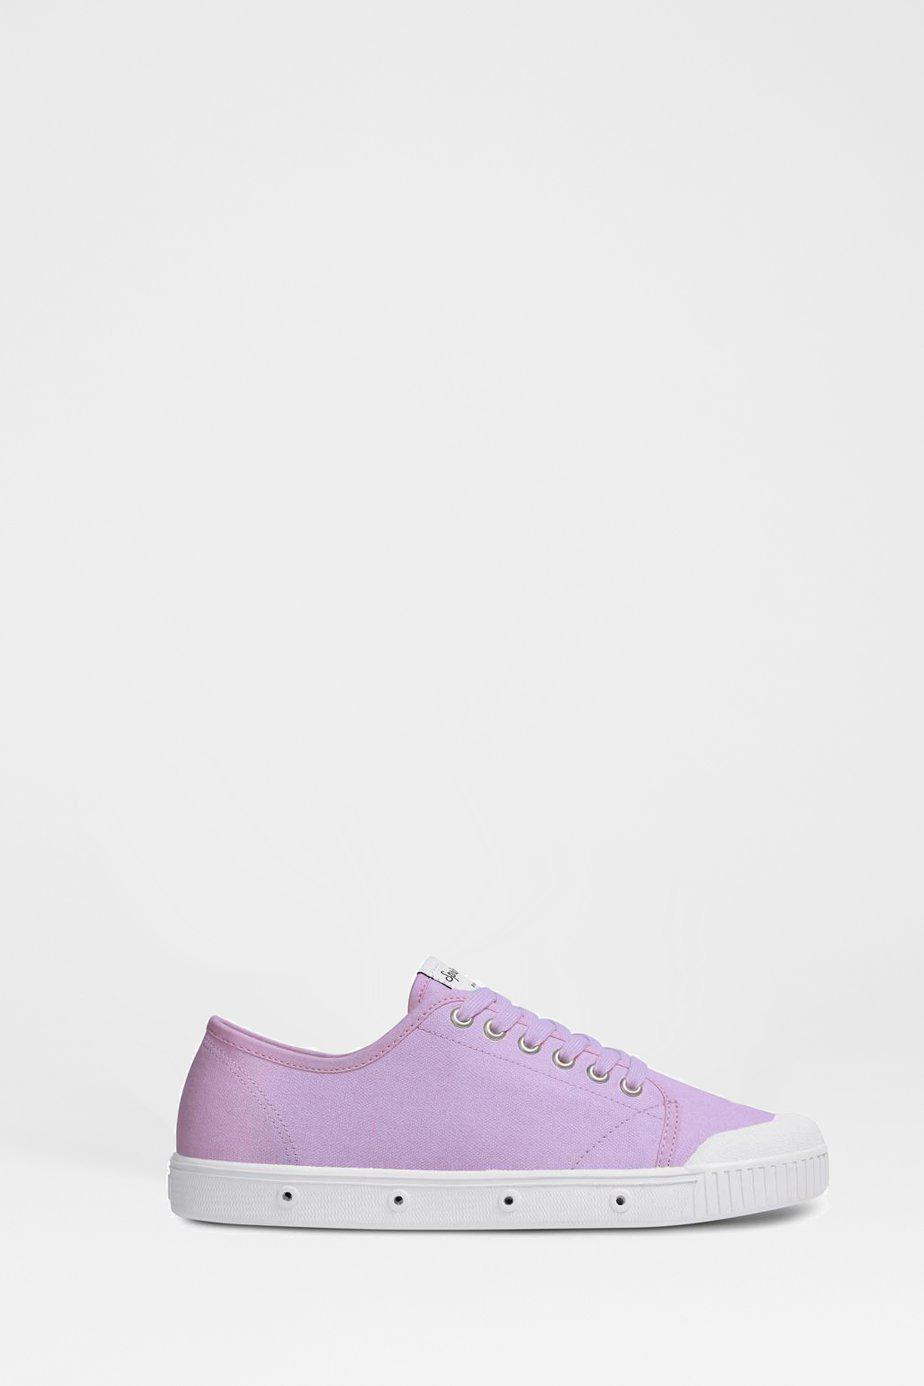 Buy G2 Slim Canvas Sneaker from SPRINGCOURT at PAYA boutique